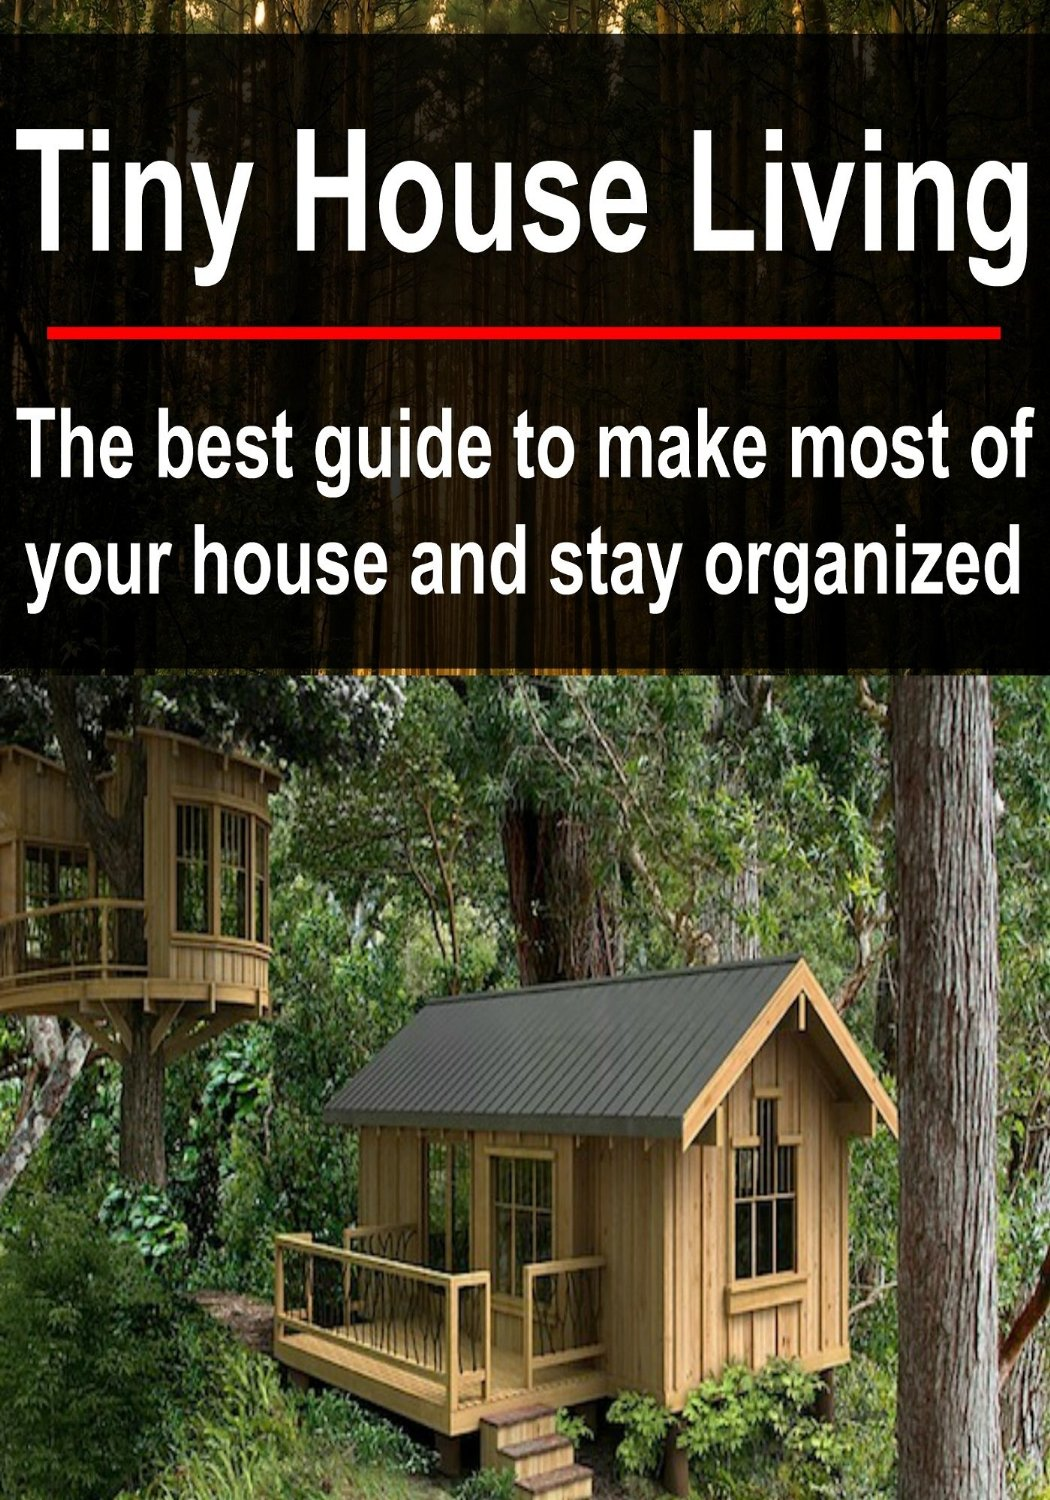 Tiny House Living The Best Guide To Make Most Of Your